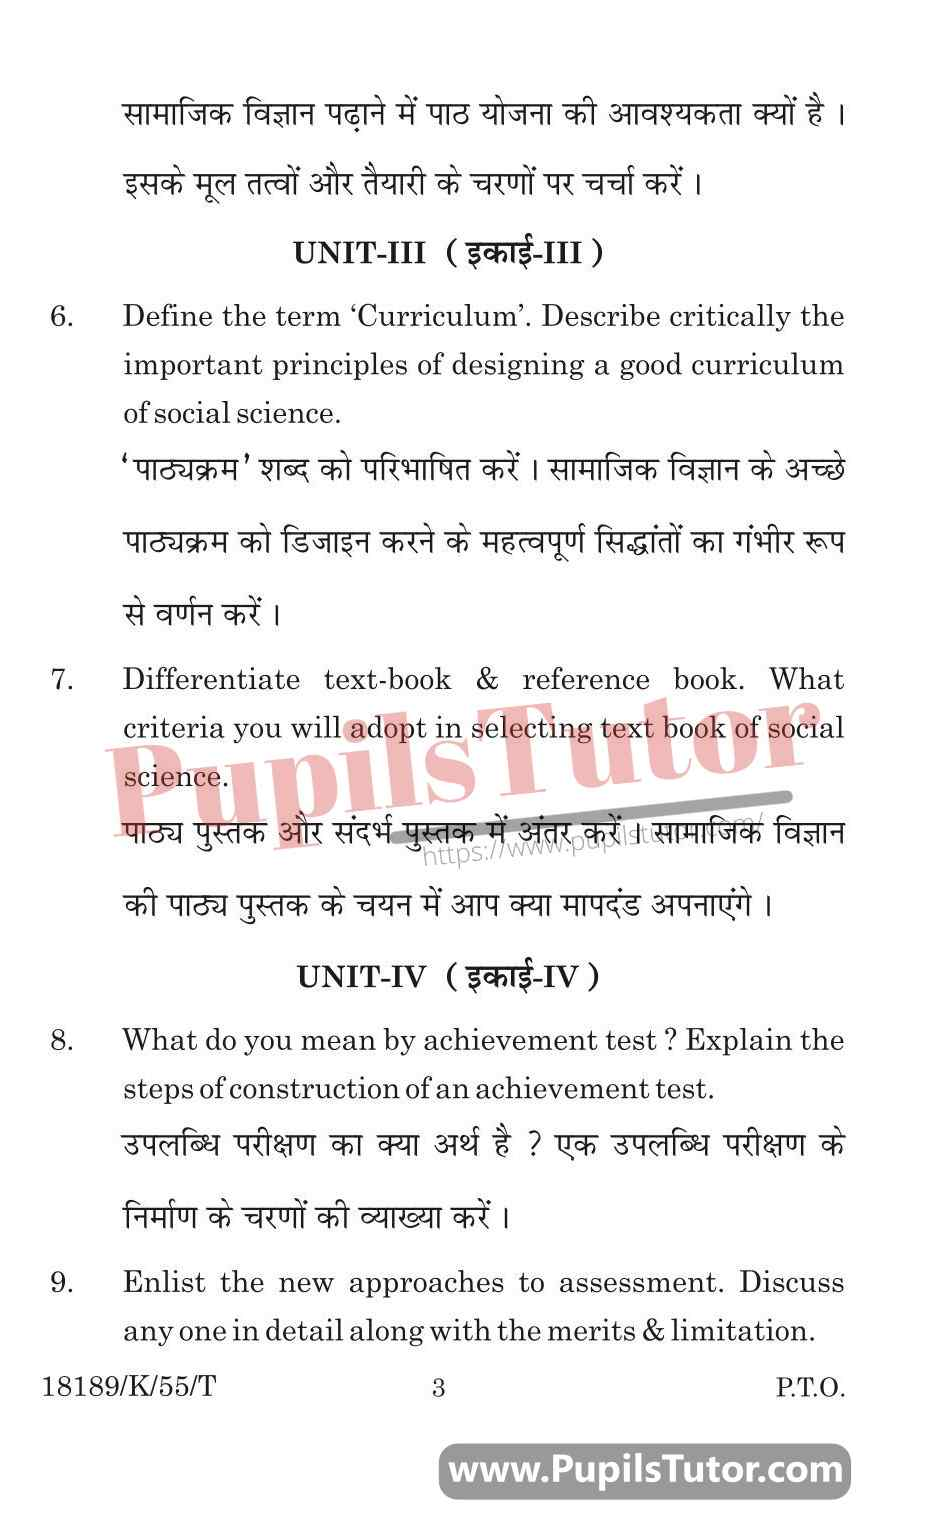 KUK (Kurukshetra University, Haryana) Pedagogy Of Social Science Question Paper 2020 For B.Ed 1st And 2nd Year And All The 4 Semesters In English And Hindi Medium Free Download PDF - Page 3 - pupilstutor